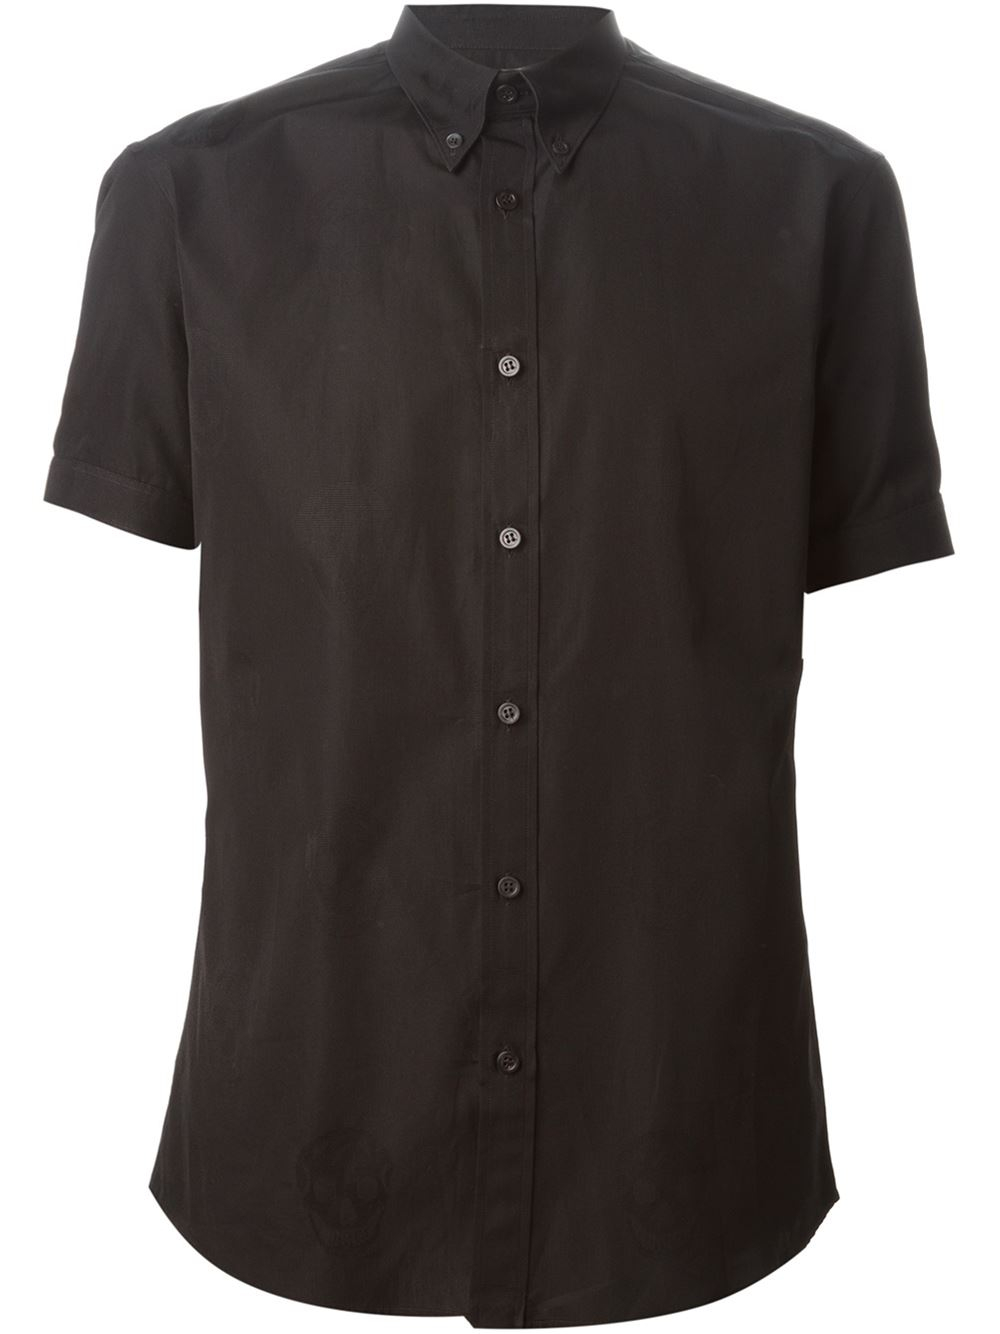 Black n Bianco Signature Boys' Sateen Button Down Black Dress Shirt in Light Pink. Sold by House Bianco. $ Black n Bianco Signature Boys' Sateen Button Down Black Dress Shirt in White. Sold by House Bianco + 4. $ - $ $ - $ Port Authority ST Men's Short Sleeve Button Down Collar Dress Shirt.